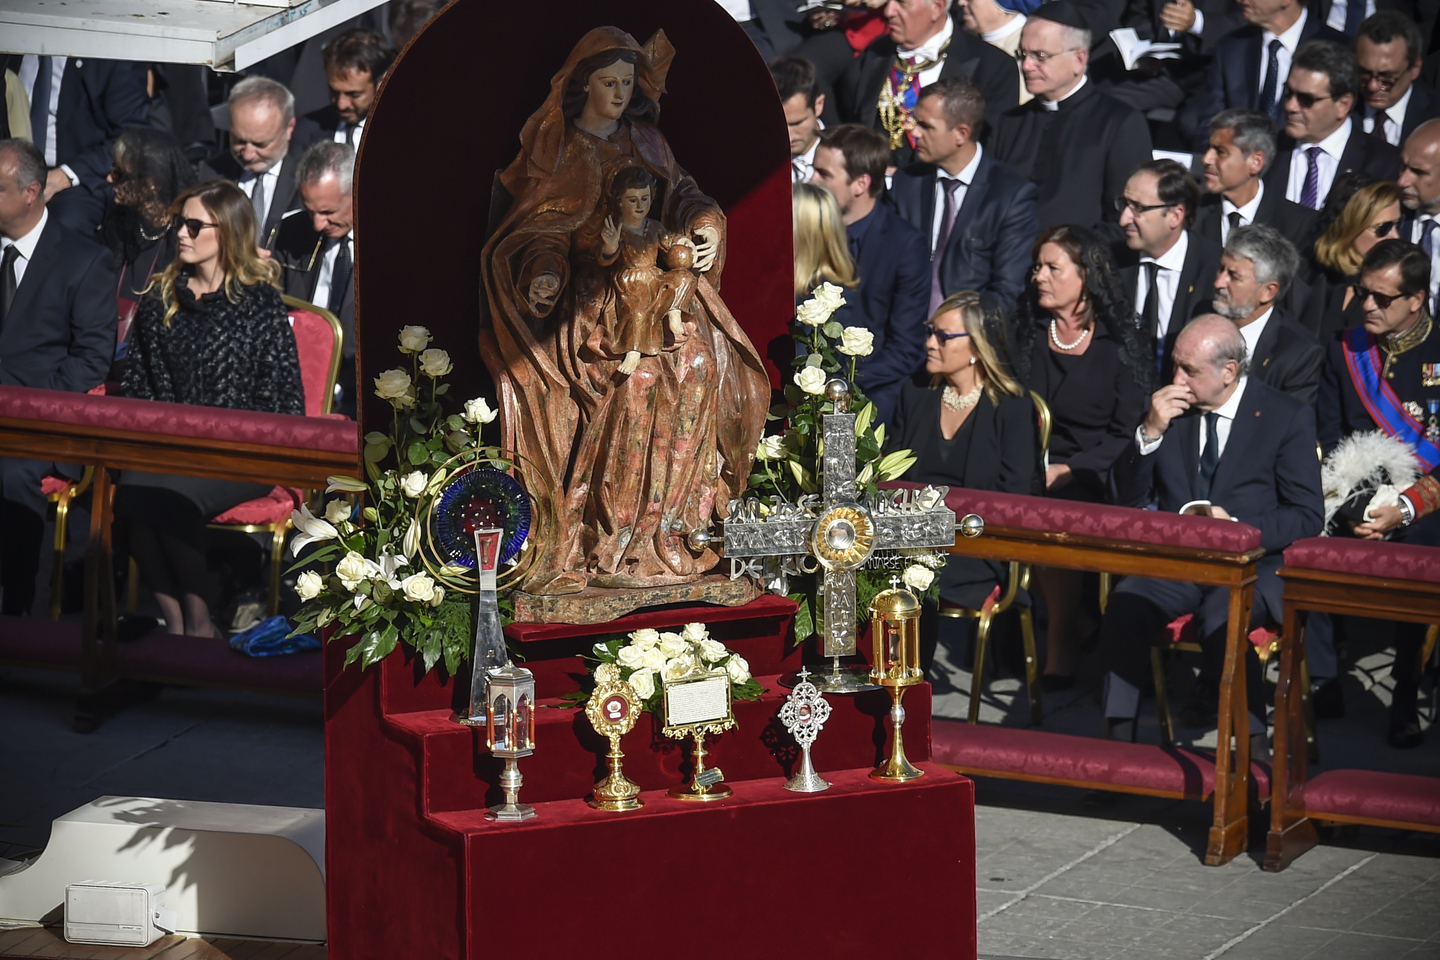 The relics of the seven new saints are exposed for veneration during the Mass of Canonization, October 16, 2016, VATICAN CITY. © Antoine Mekary / ALETEIA